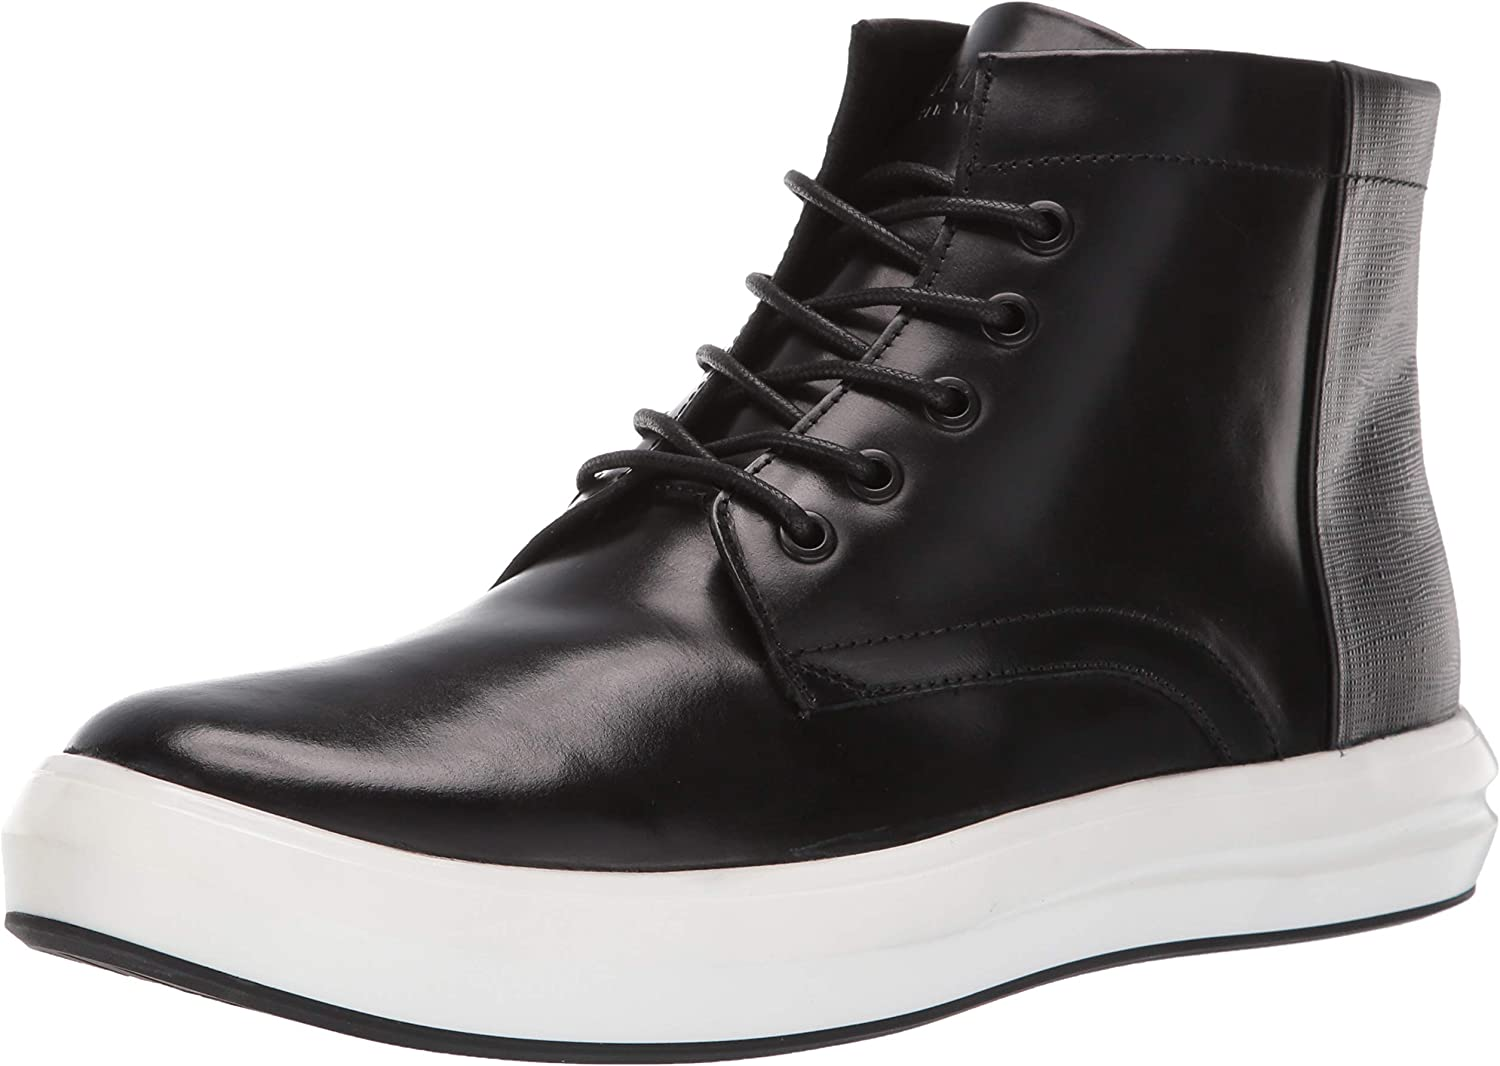 Kenneth Cole ny York herr The Mover Boot Mode Mode Mode Boot Boot  preferentiell